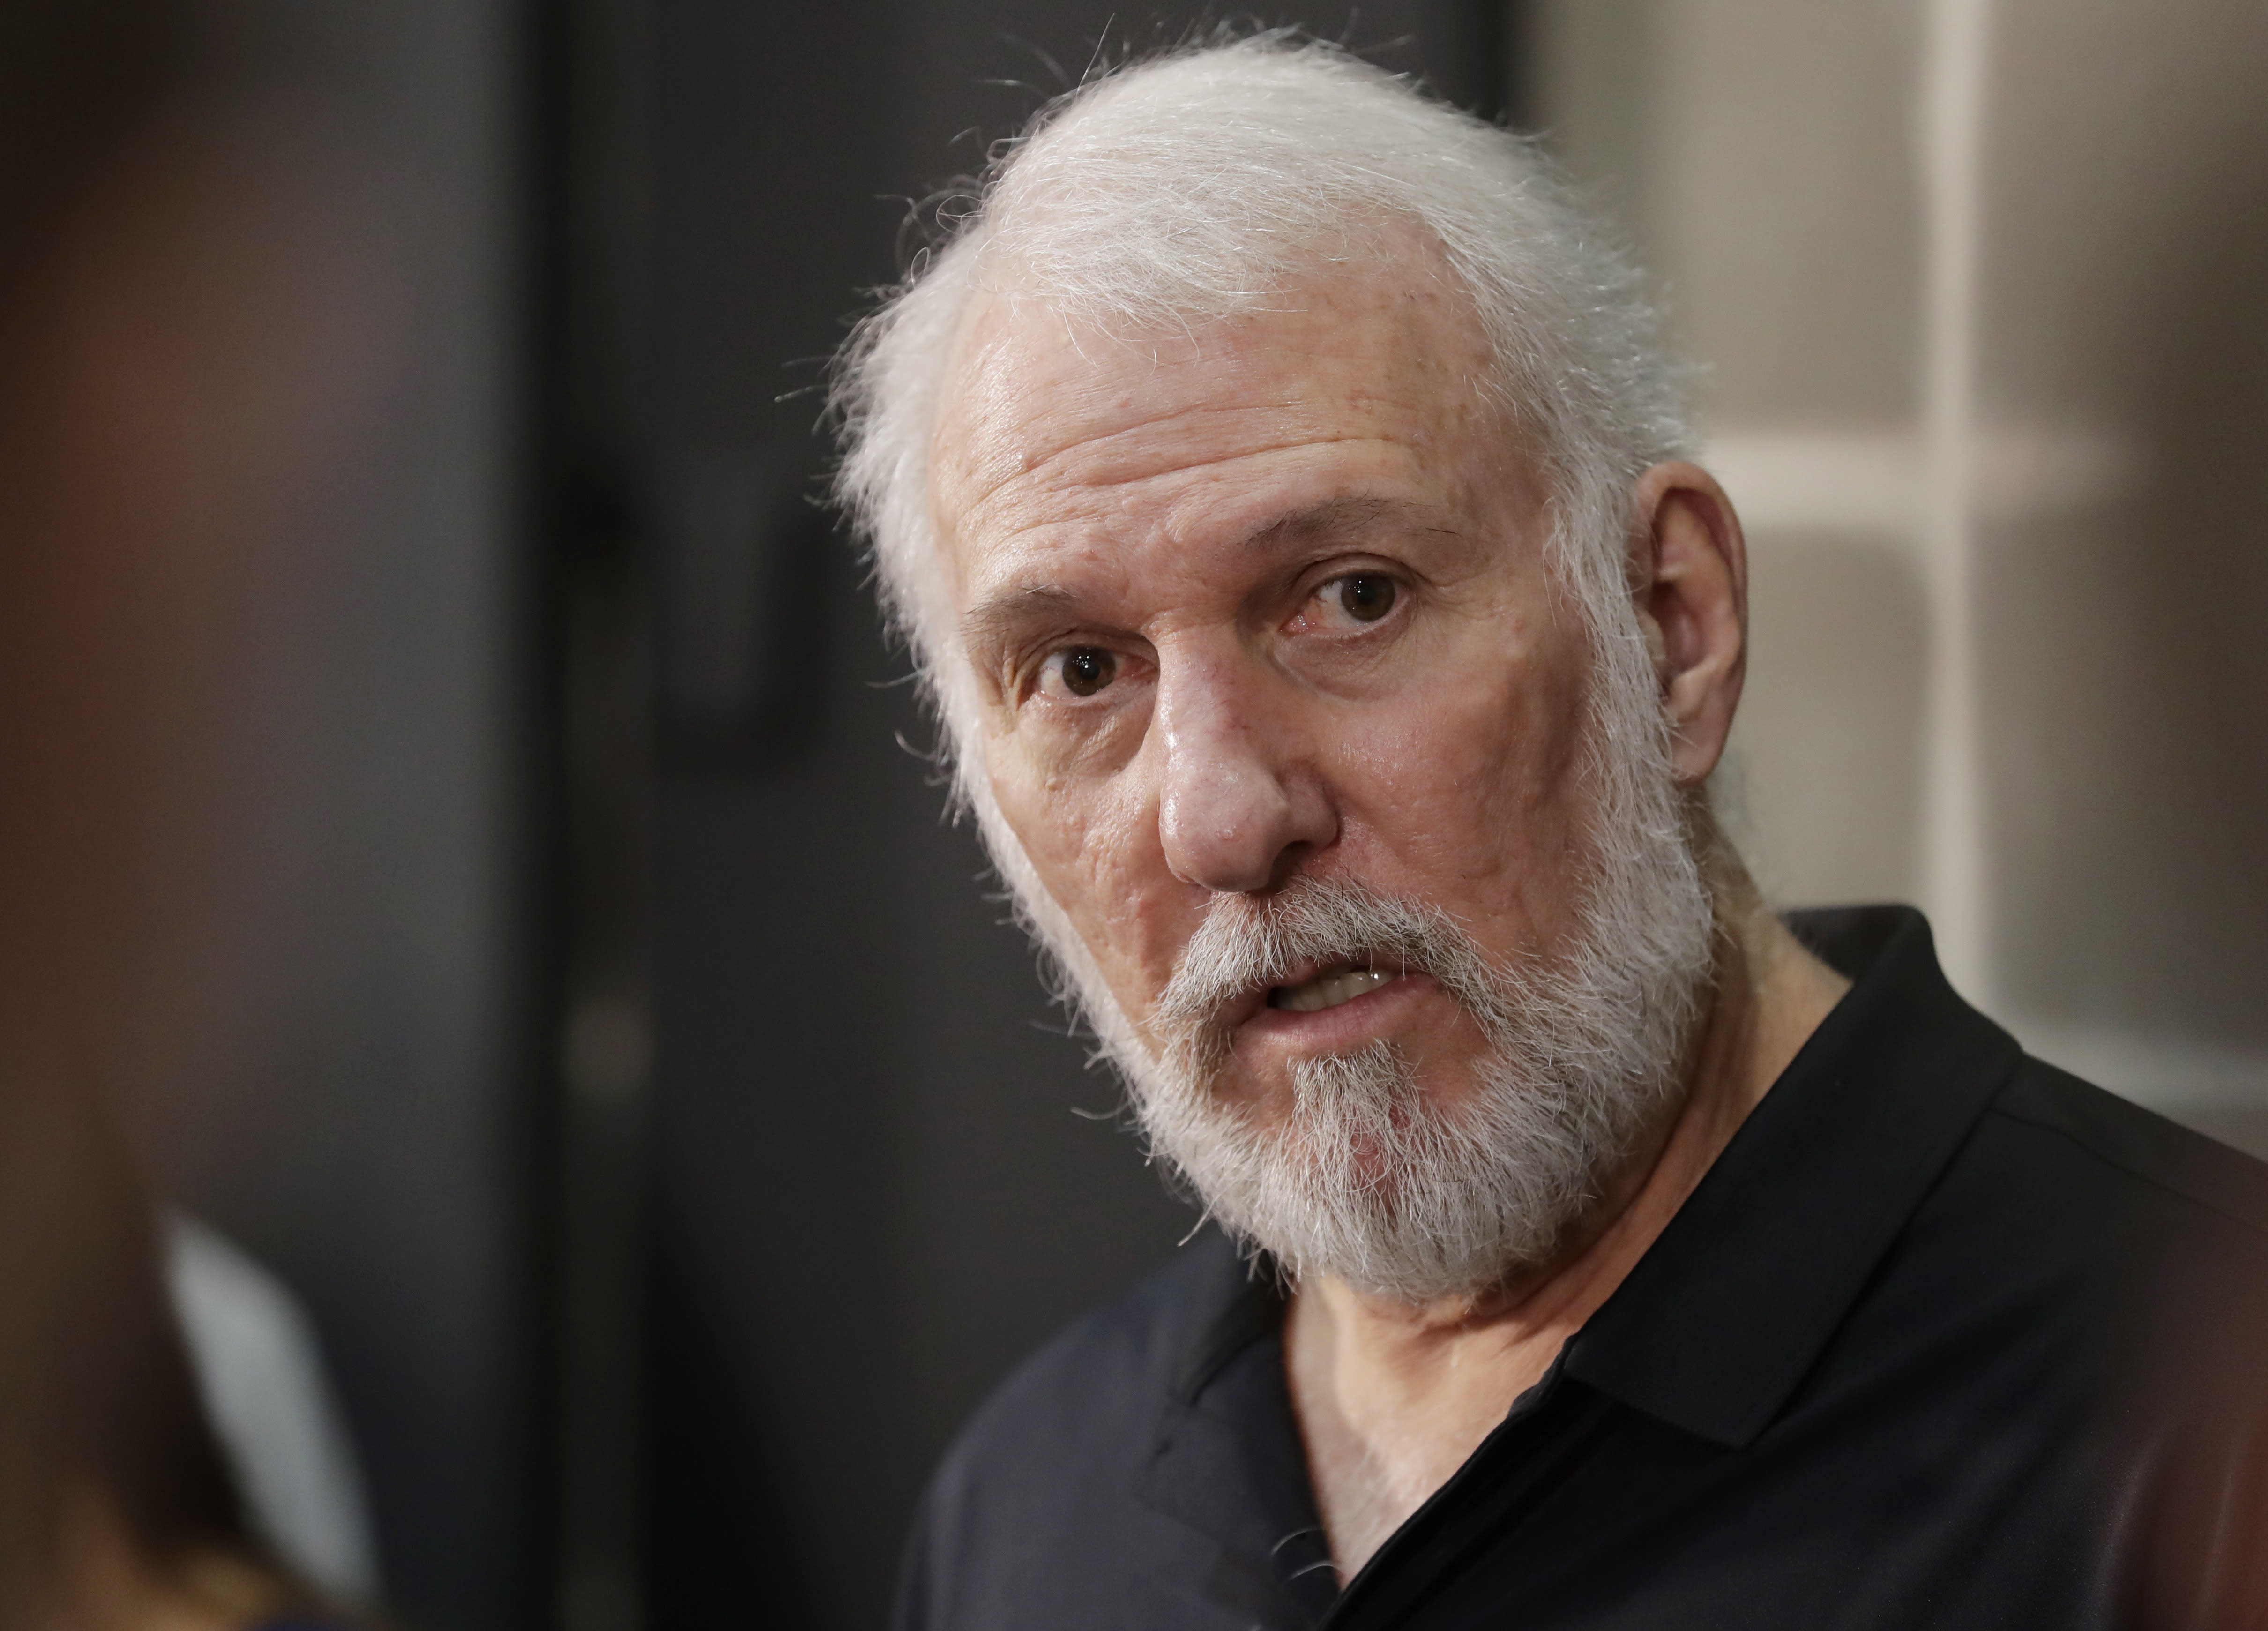 Spurs coach Gregg Popovich: President Trump is a 'soulless coward'